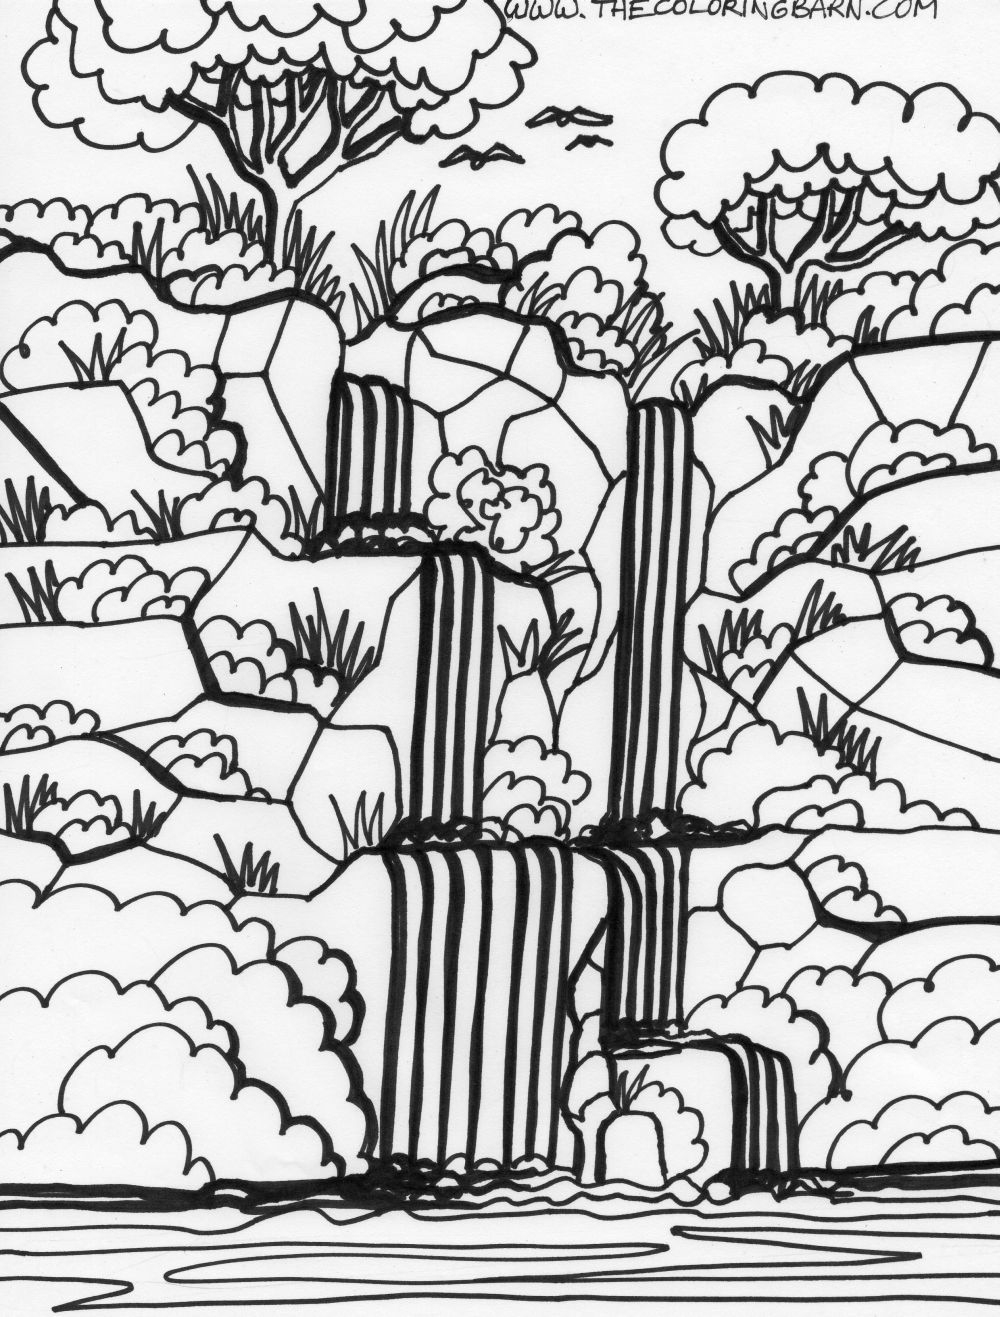 Amazon Rainforest Coloring Pages For Kids   Free Download Coloring - Free Printable Waterfall Coloring Pages